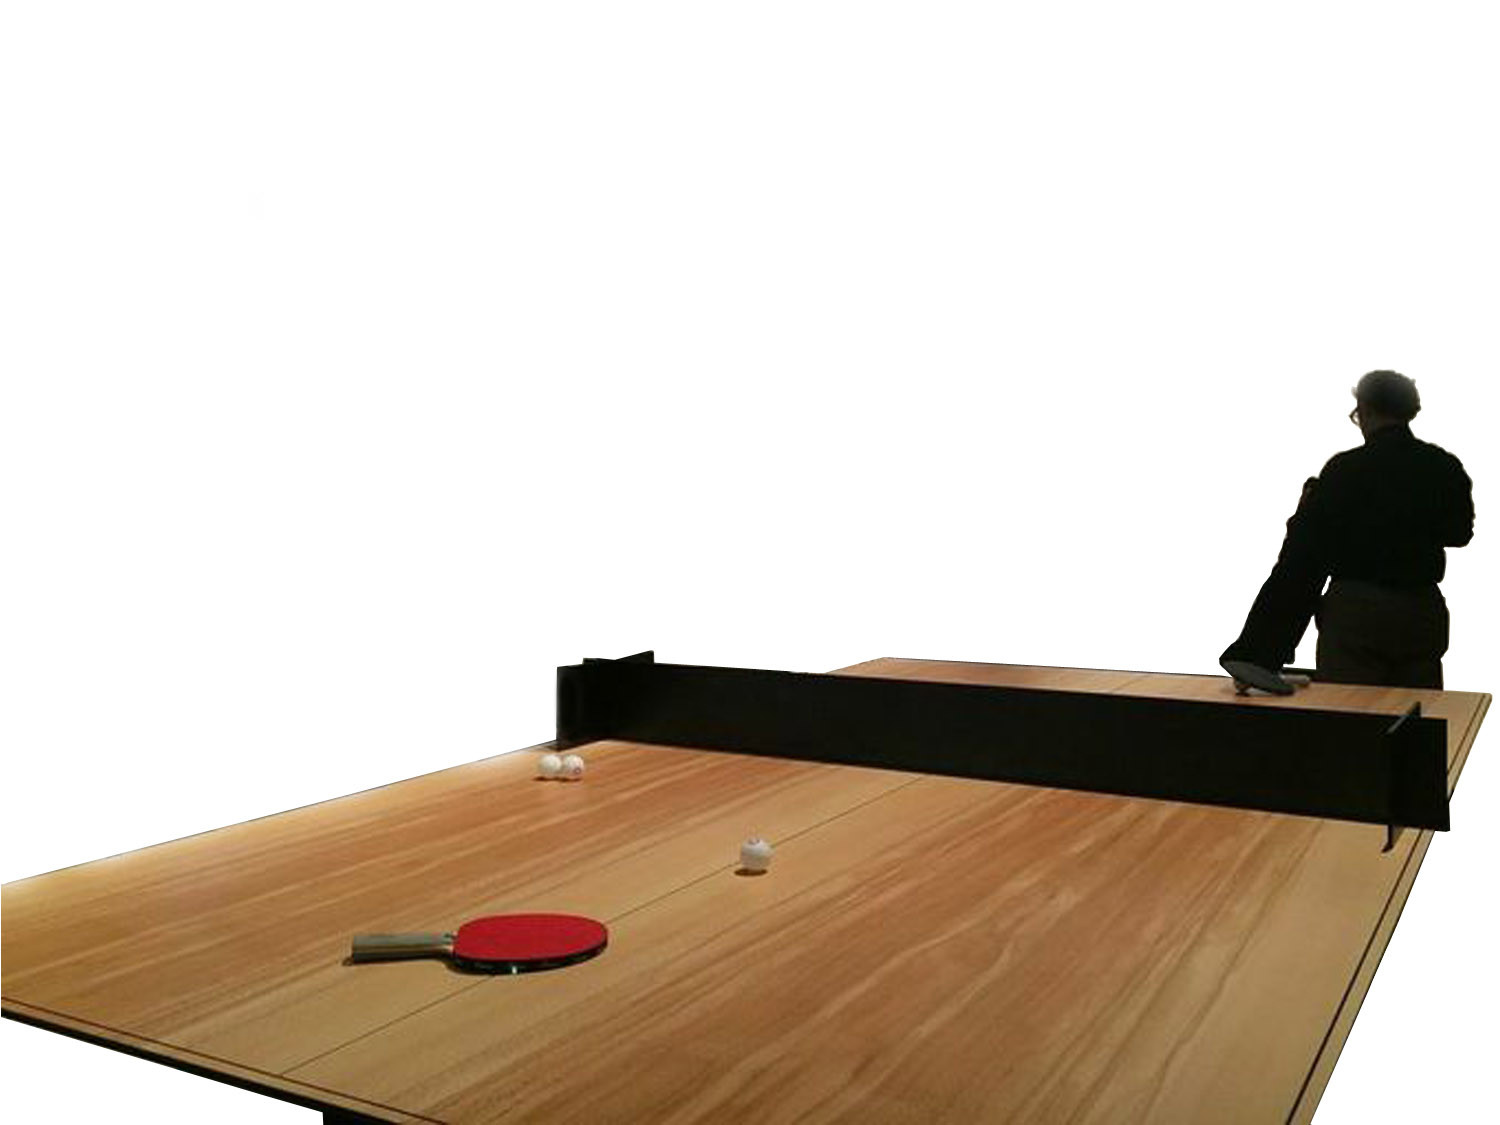 Dan Ping Pong Wooden Meeting Table